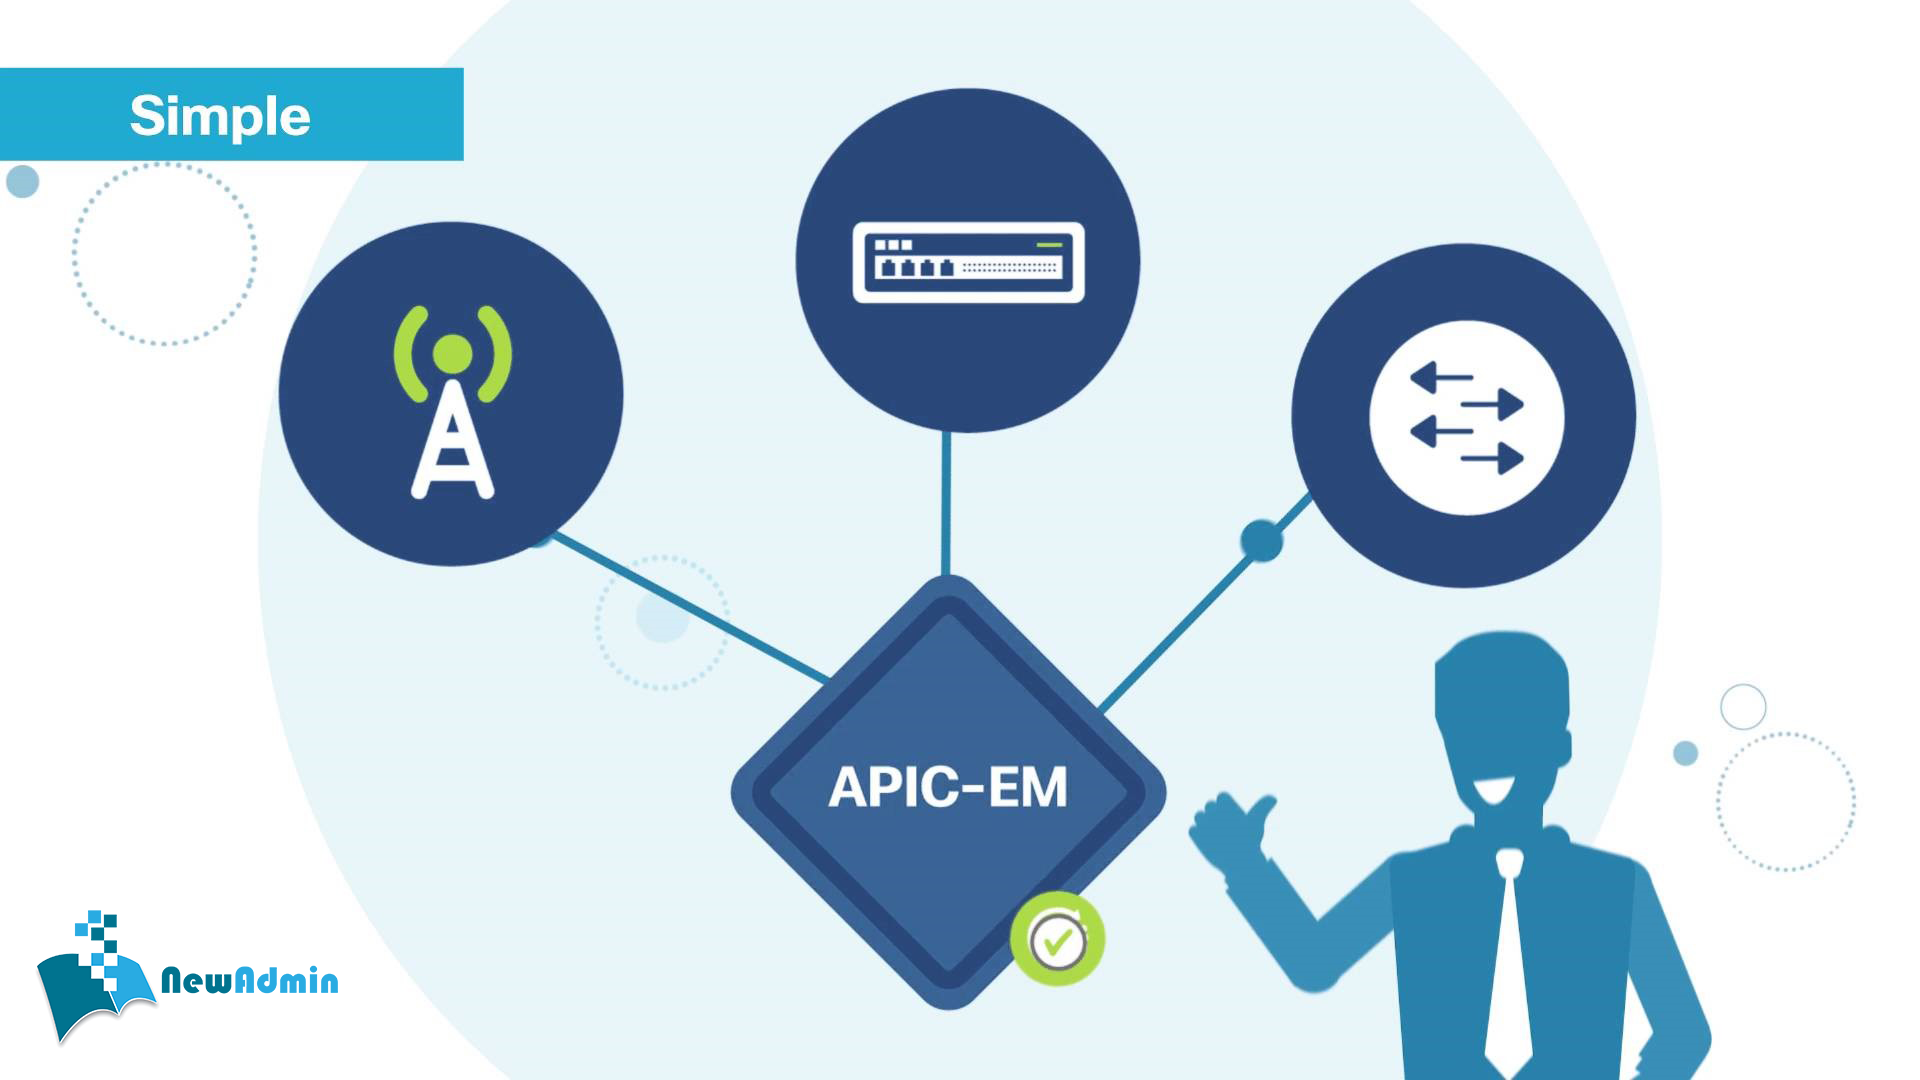 Application Policy Infrastructure Controller Enterprise Module (APIC-EM)